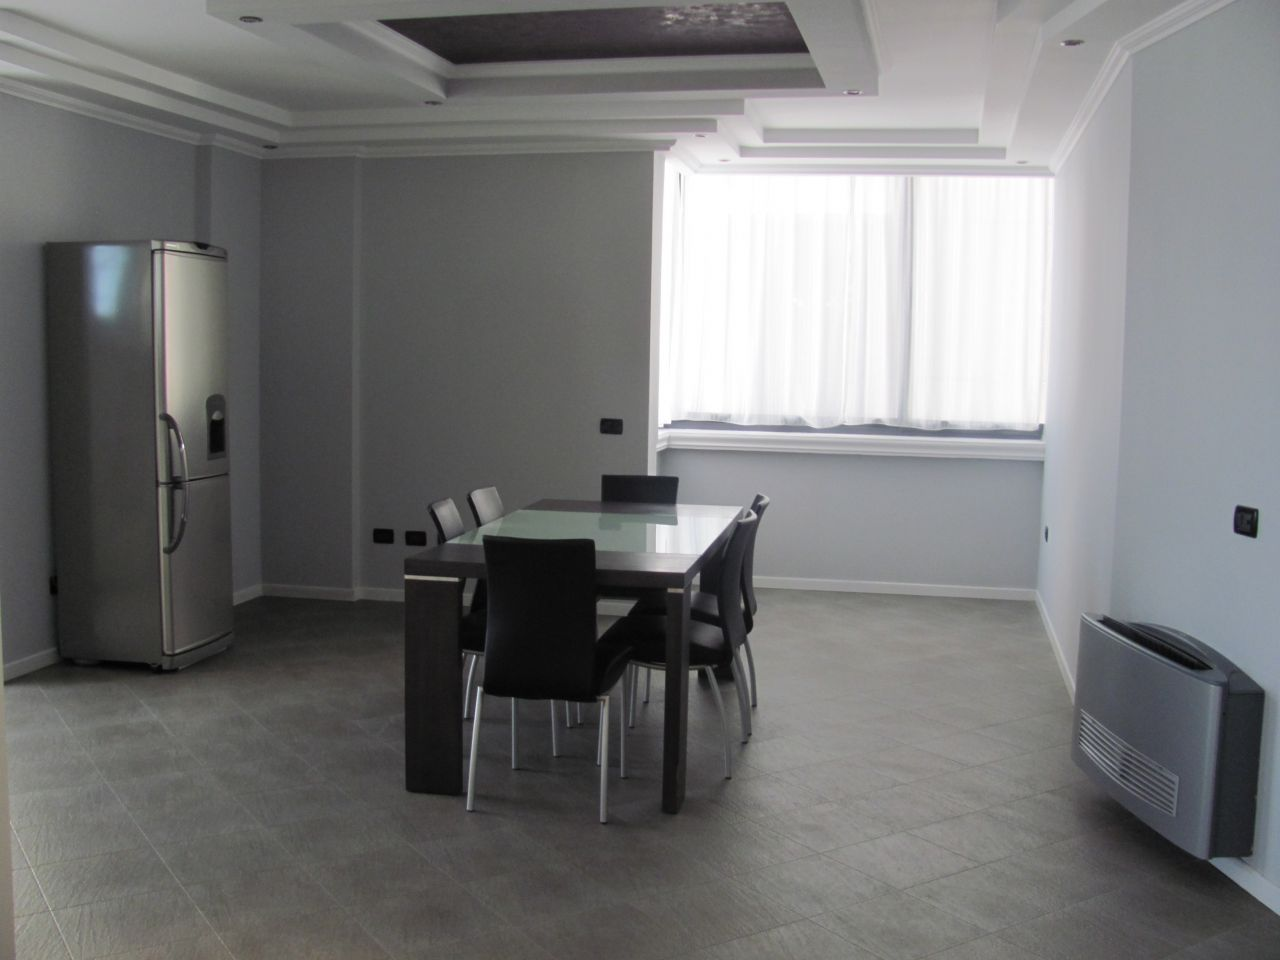 3 bedrooms apartment in Tirana